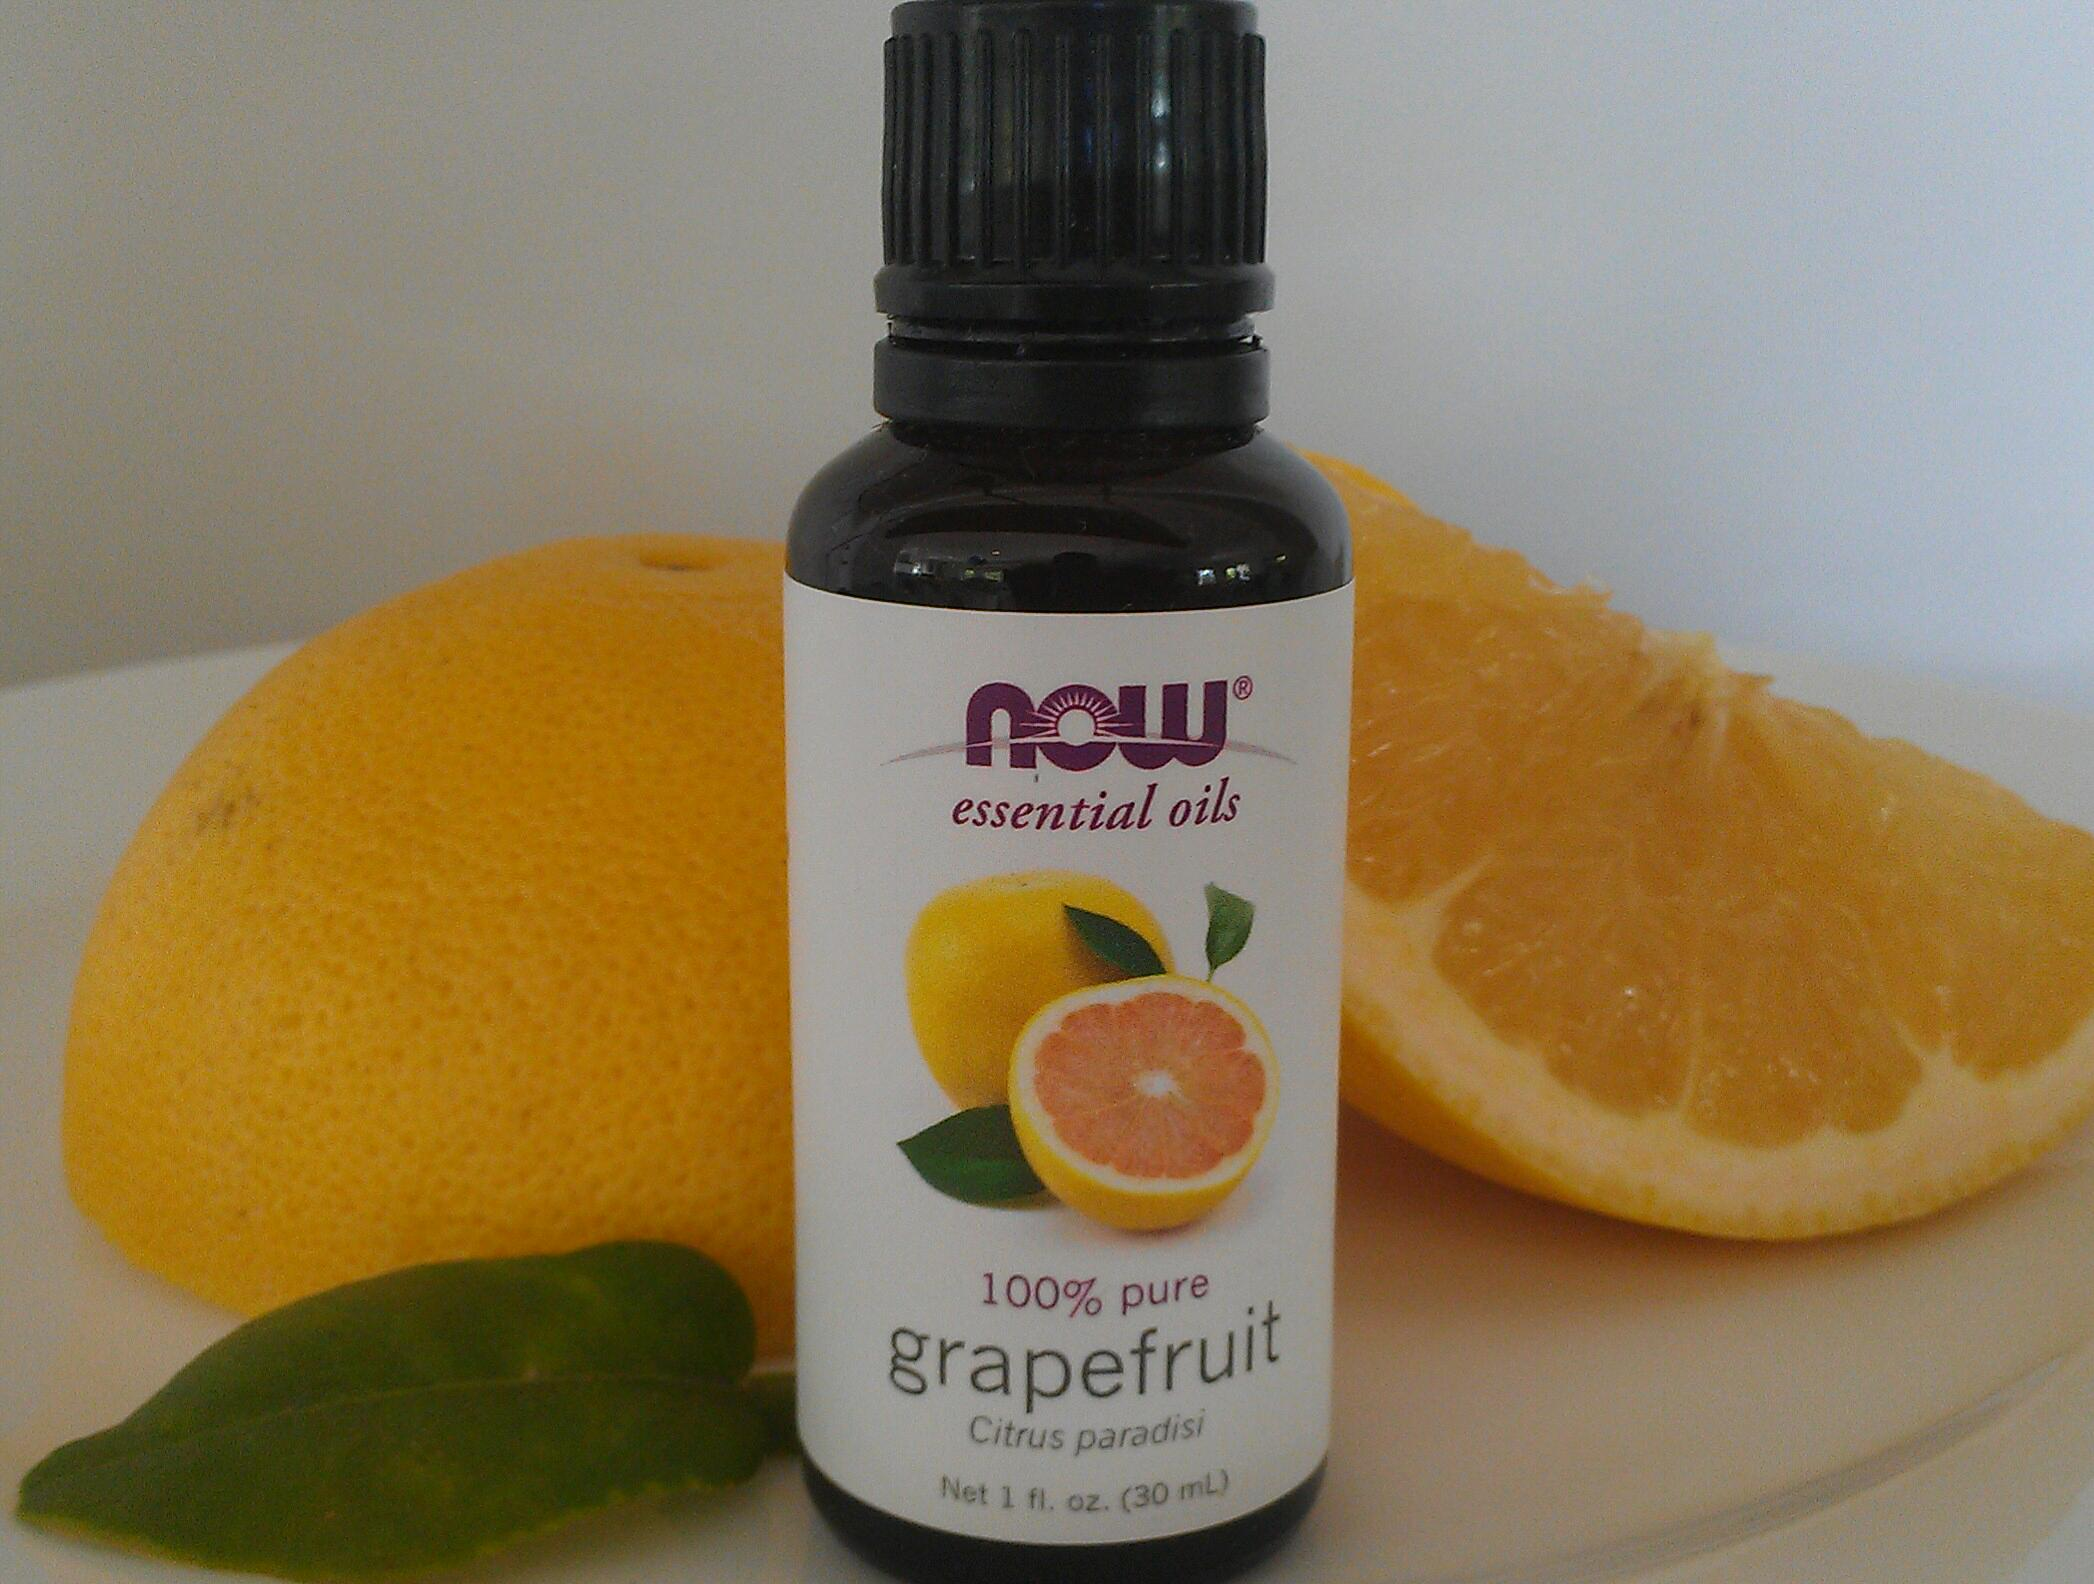 Squash Hunger & Lose Weight by Smelling Grapefruit Essential Oil, Not Lavender